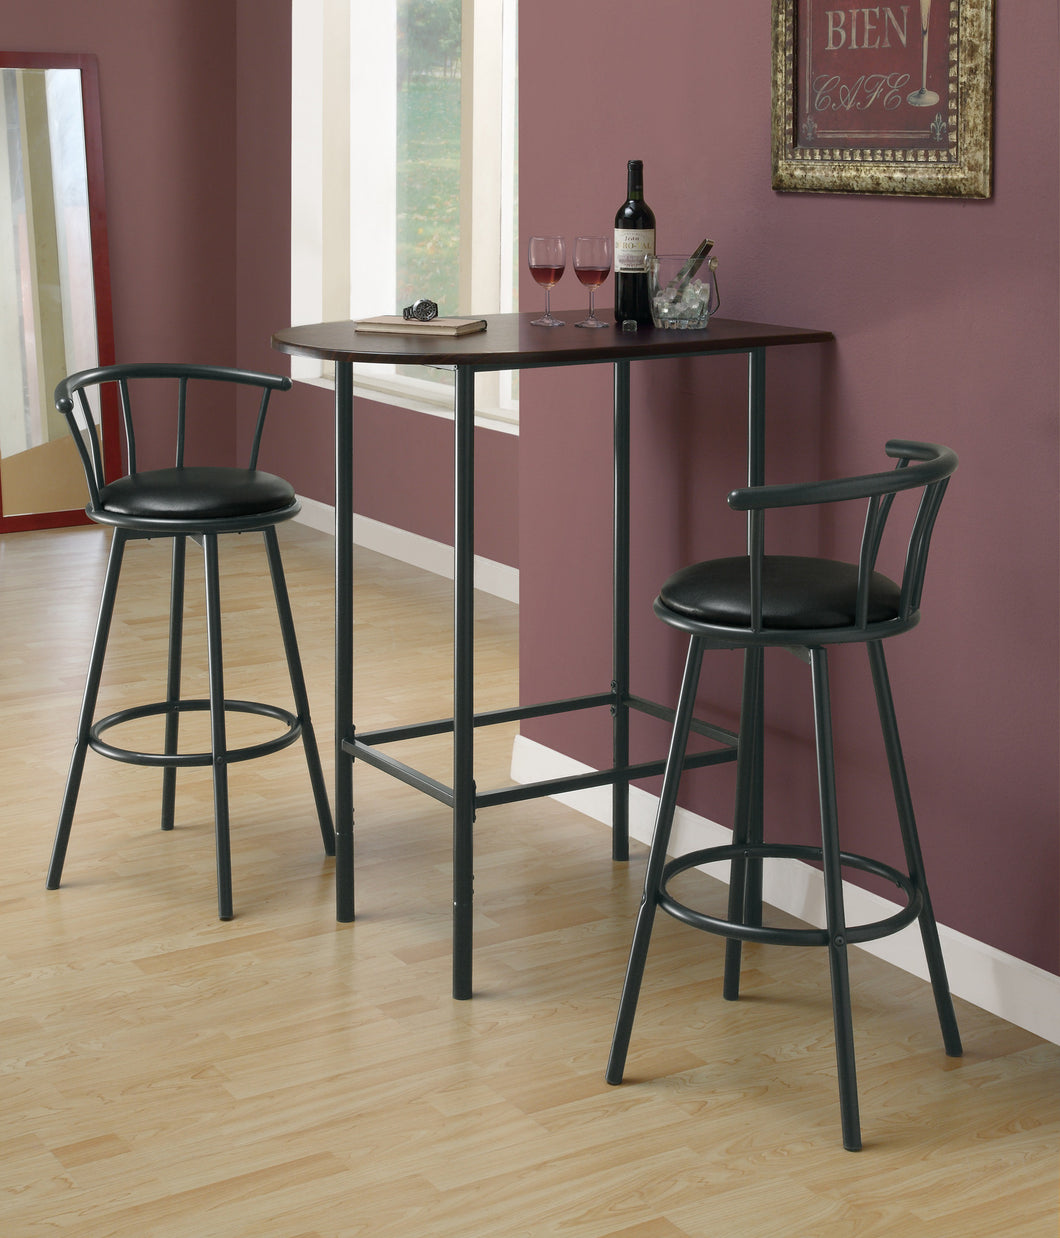 Candace & Basil Barstool - 2PC Set / 36